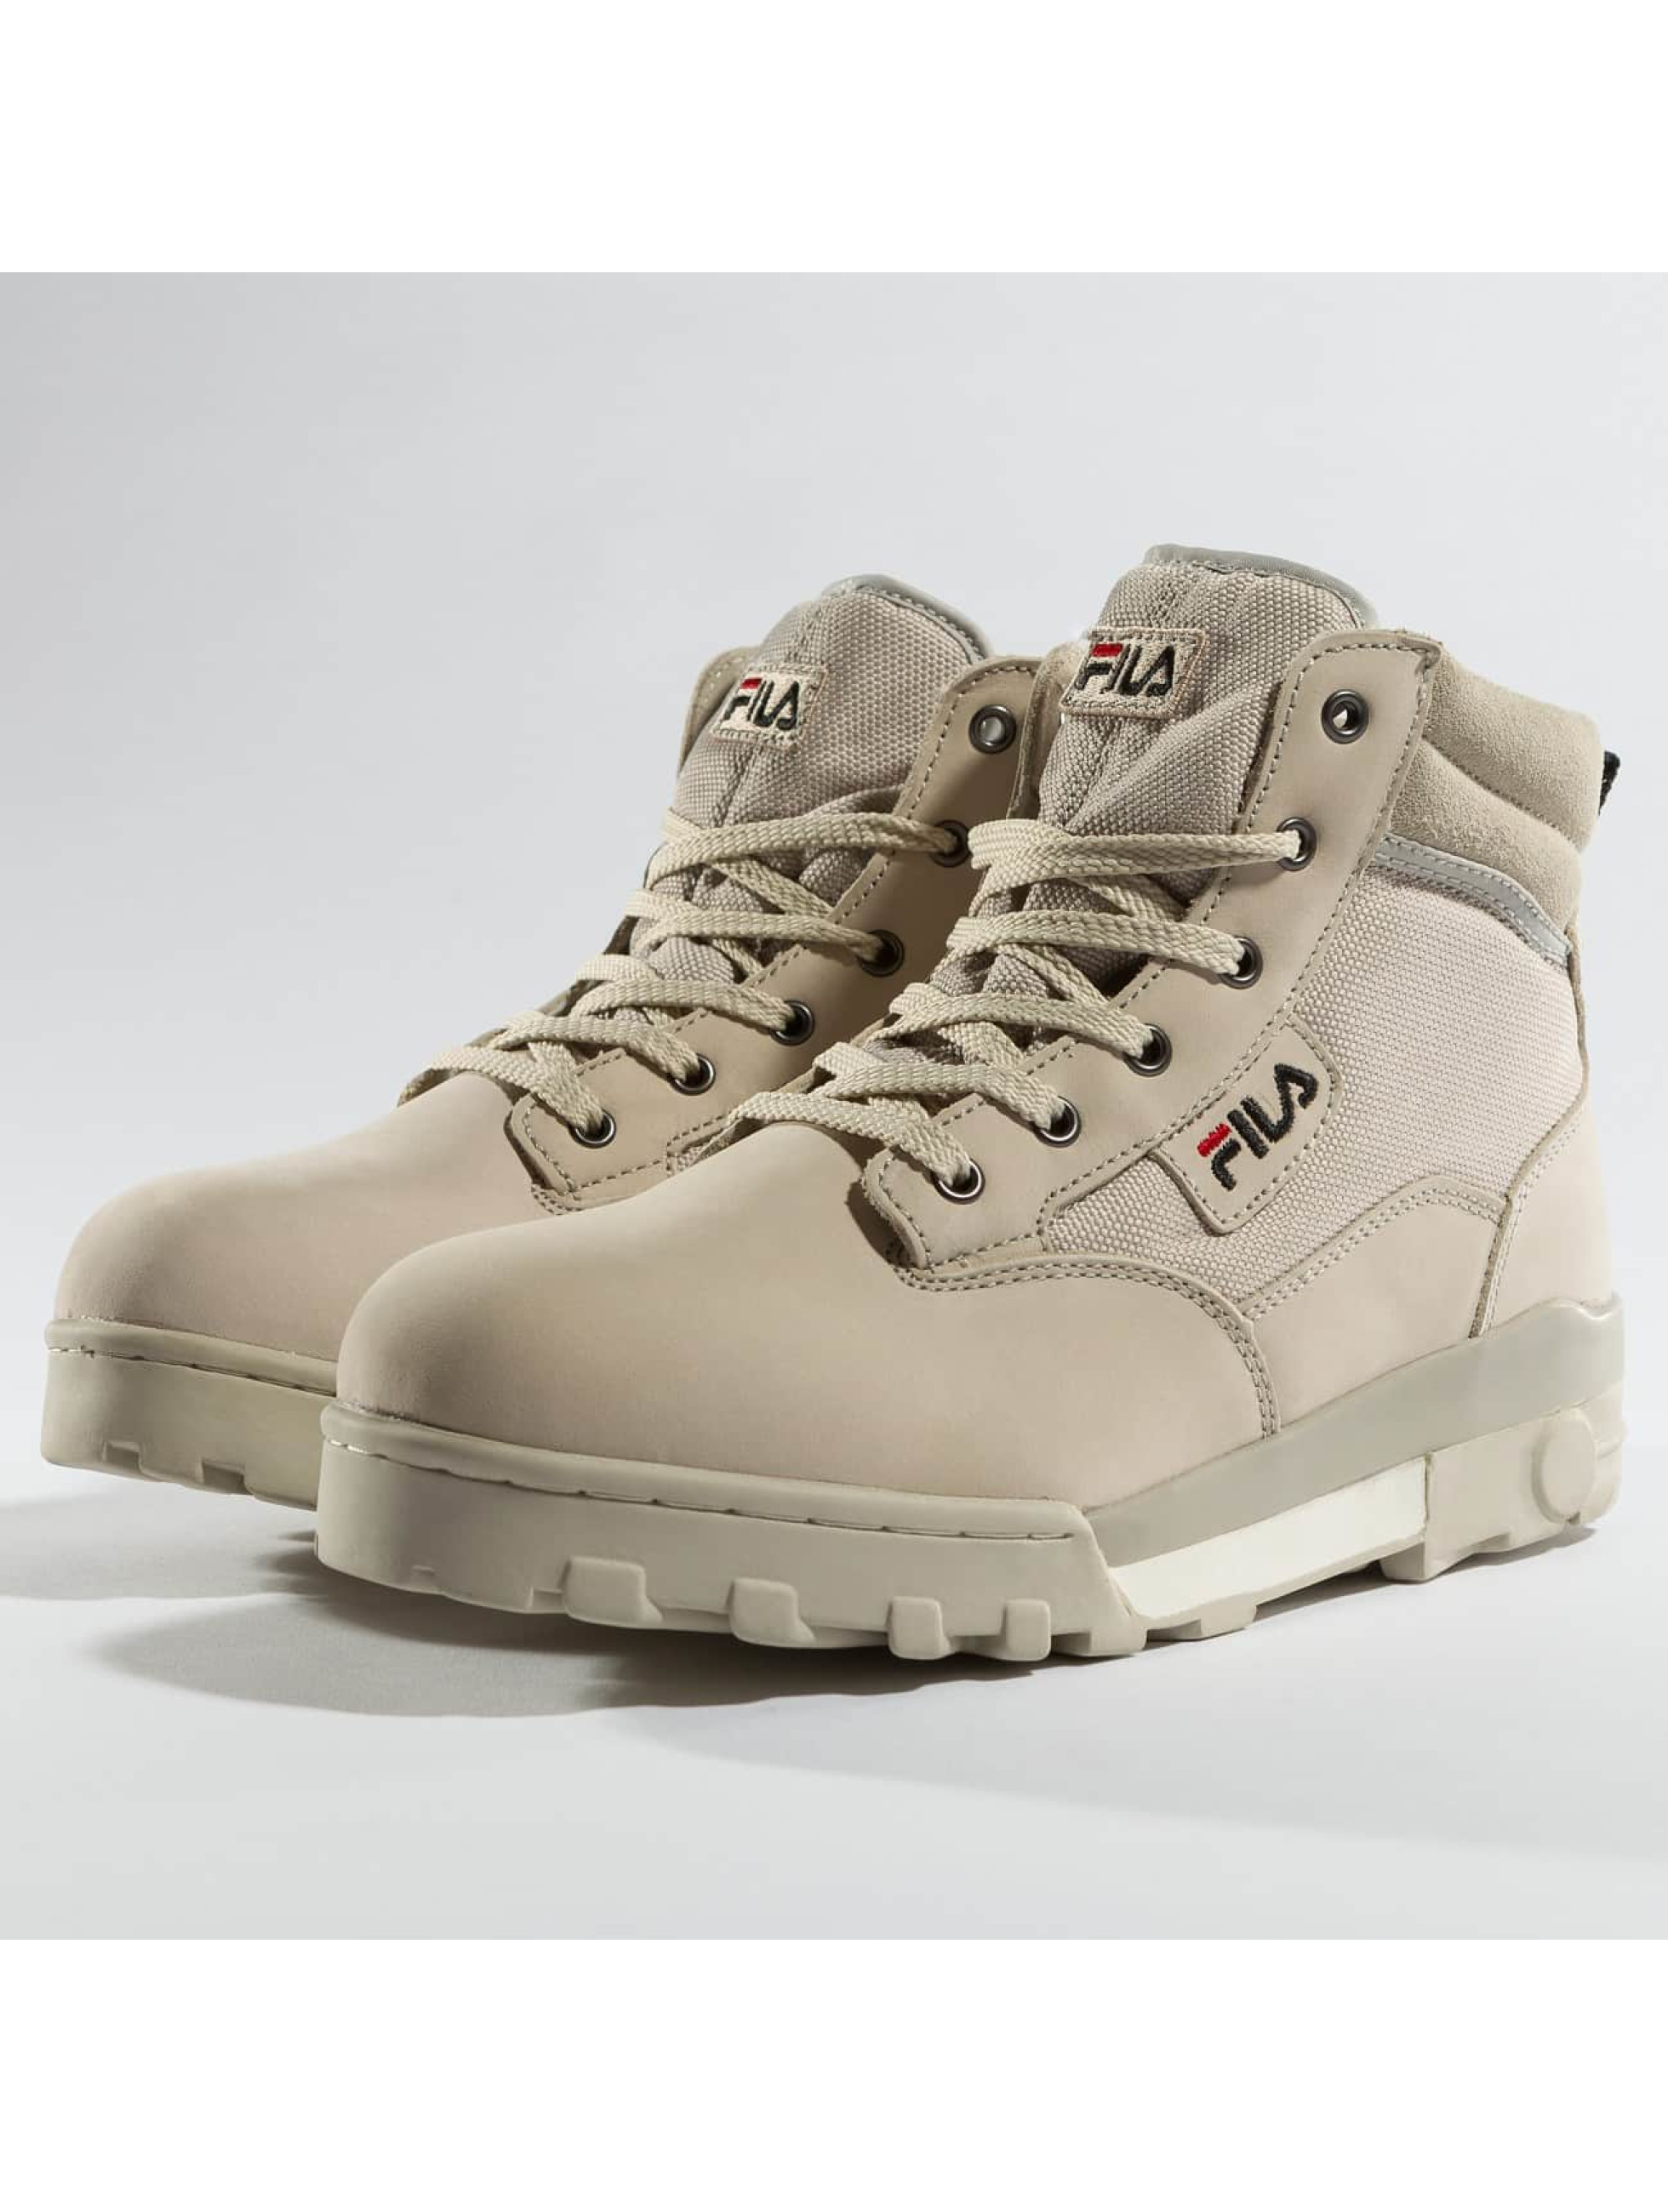 fila damen schuhe boots heritage grunge mid ebay. Black Bedroom Furniture Sets. Home Design Ideas